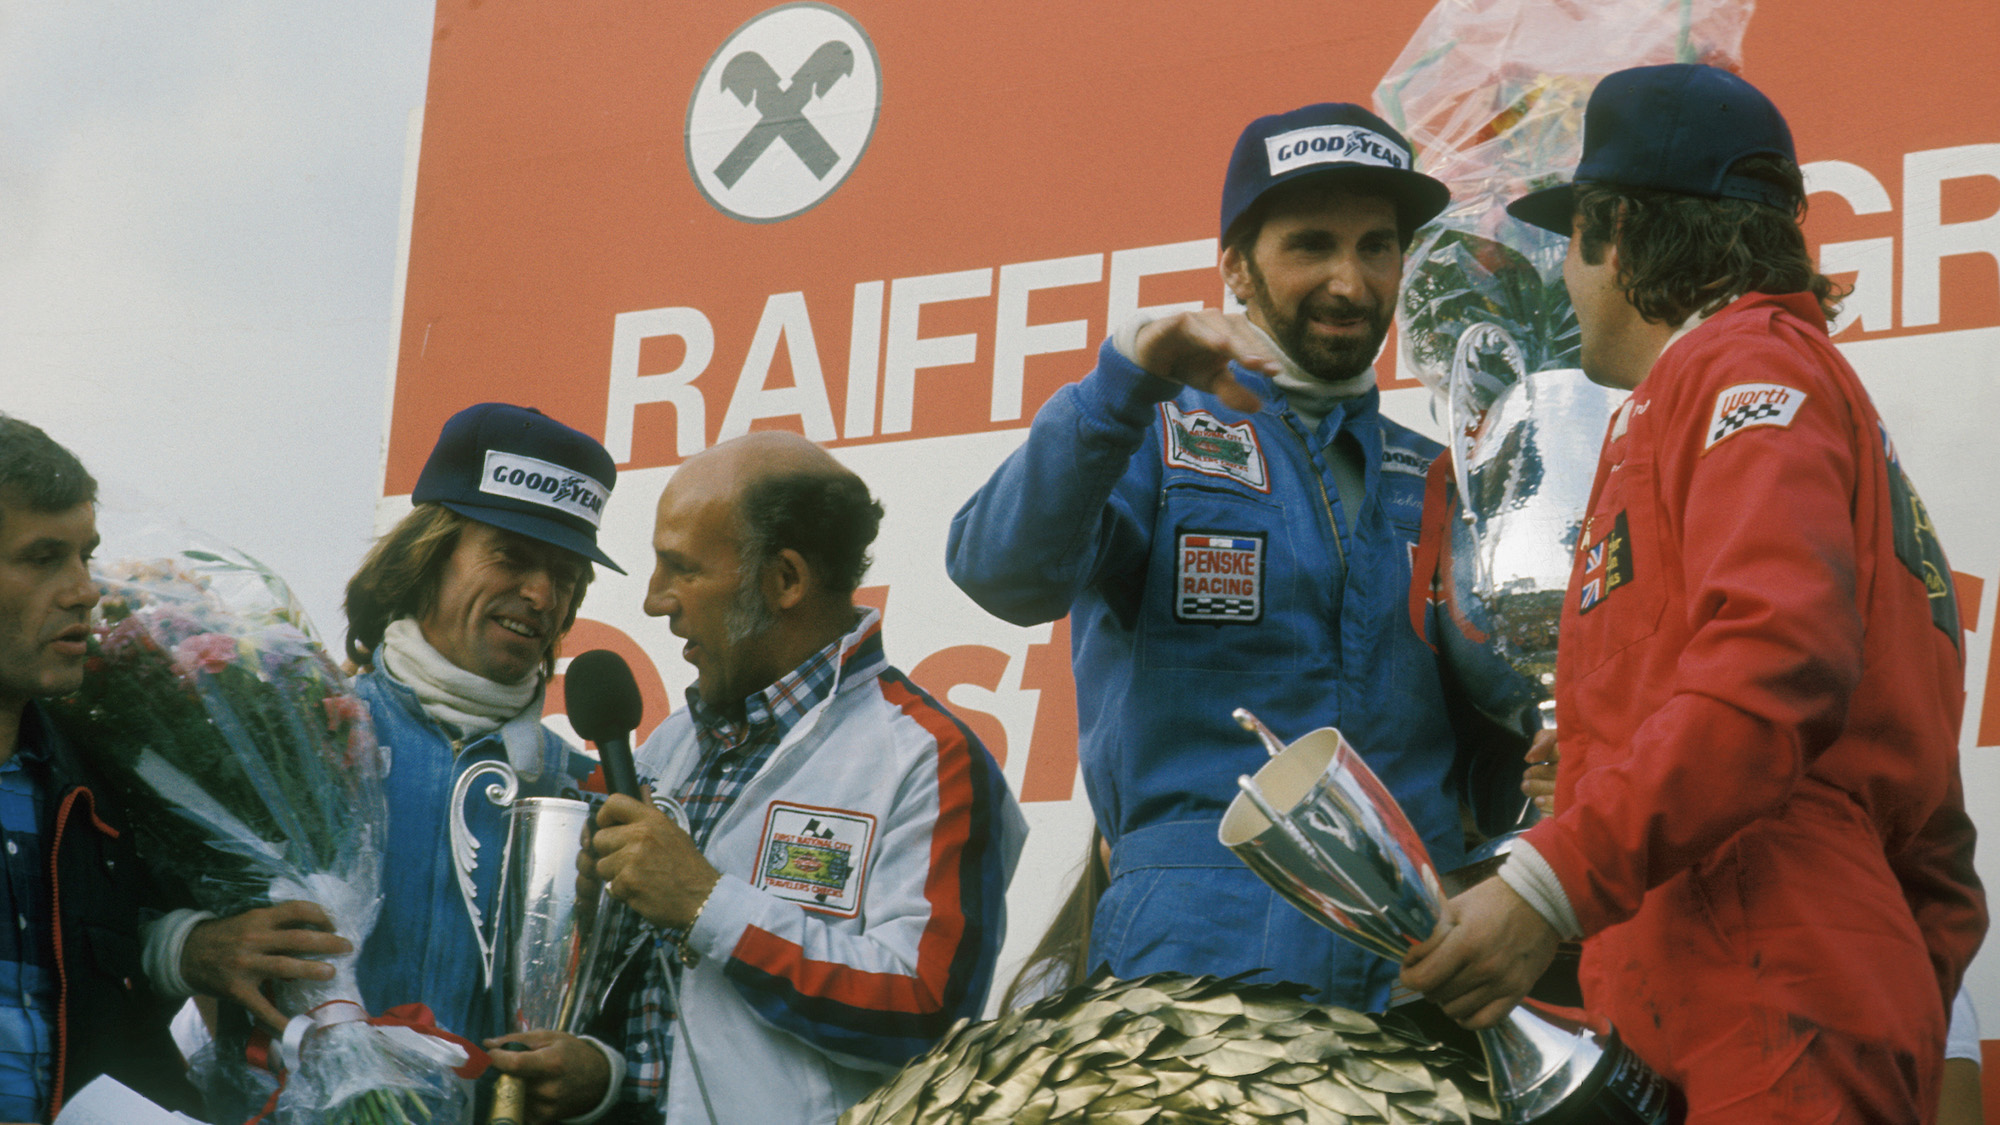 John Watson on the podium after winning at the Osterreichring in the 1976 Austrian Grand Prix